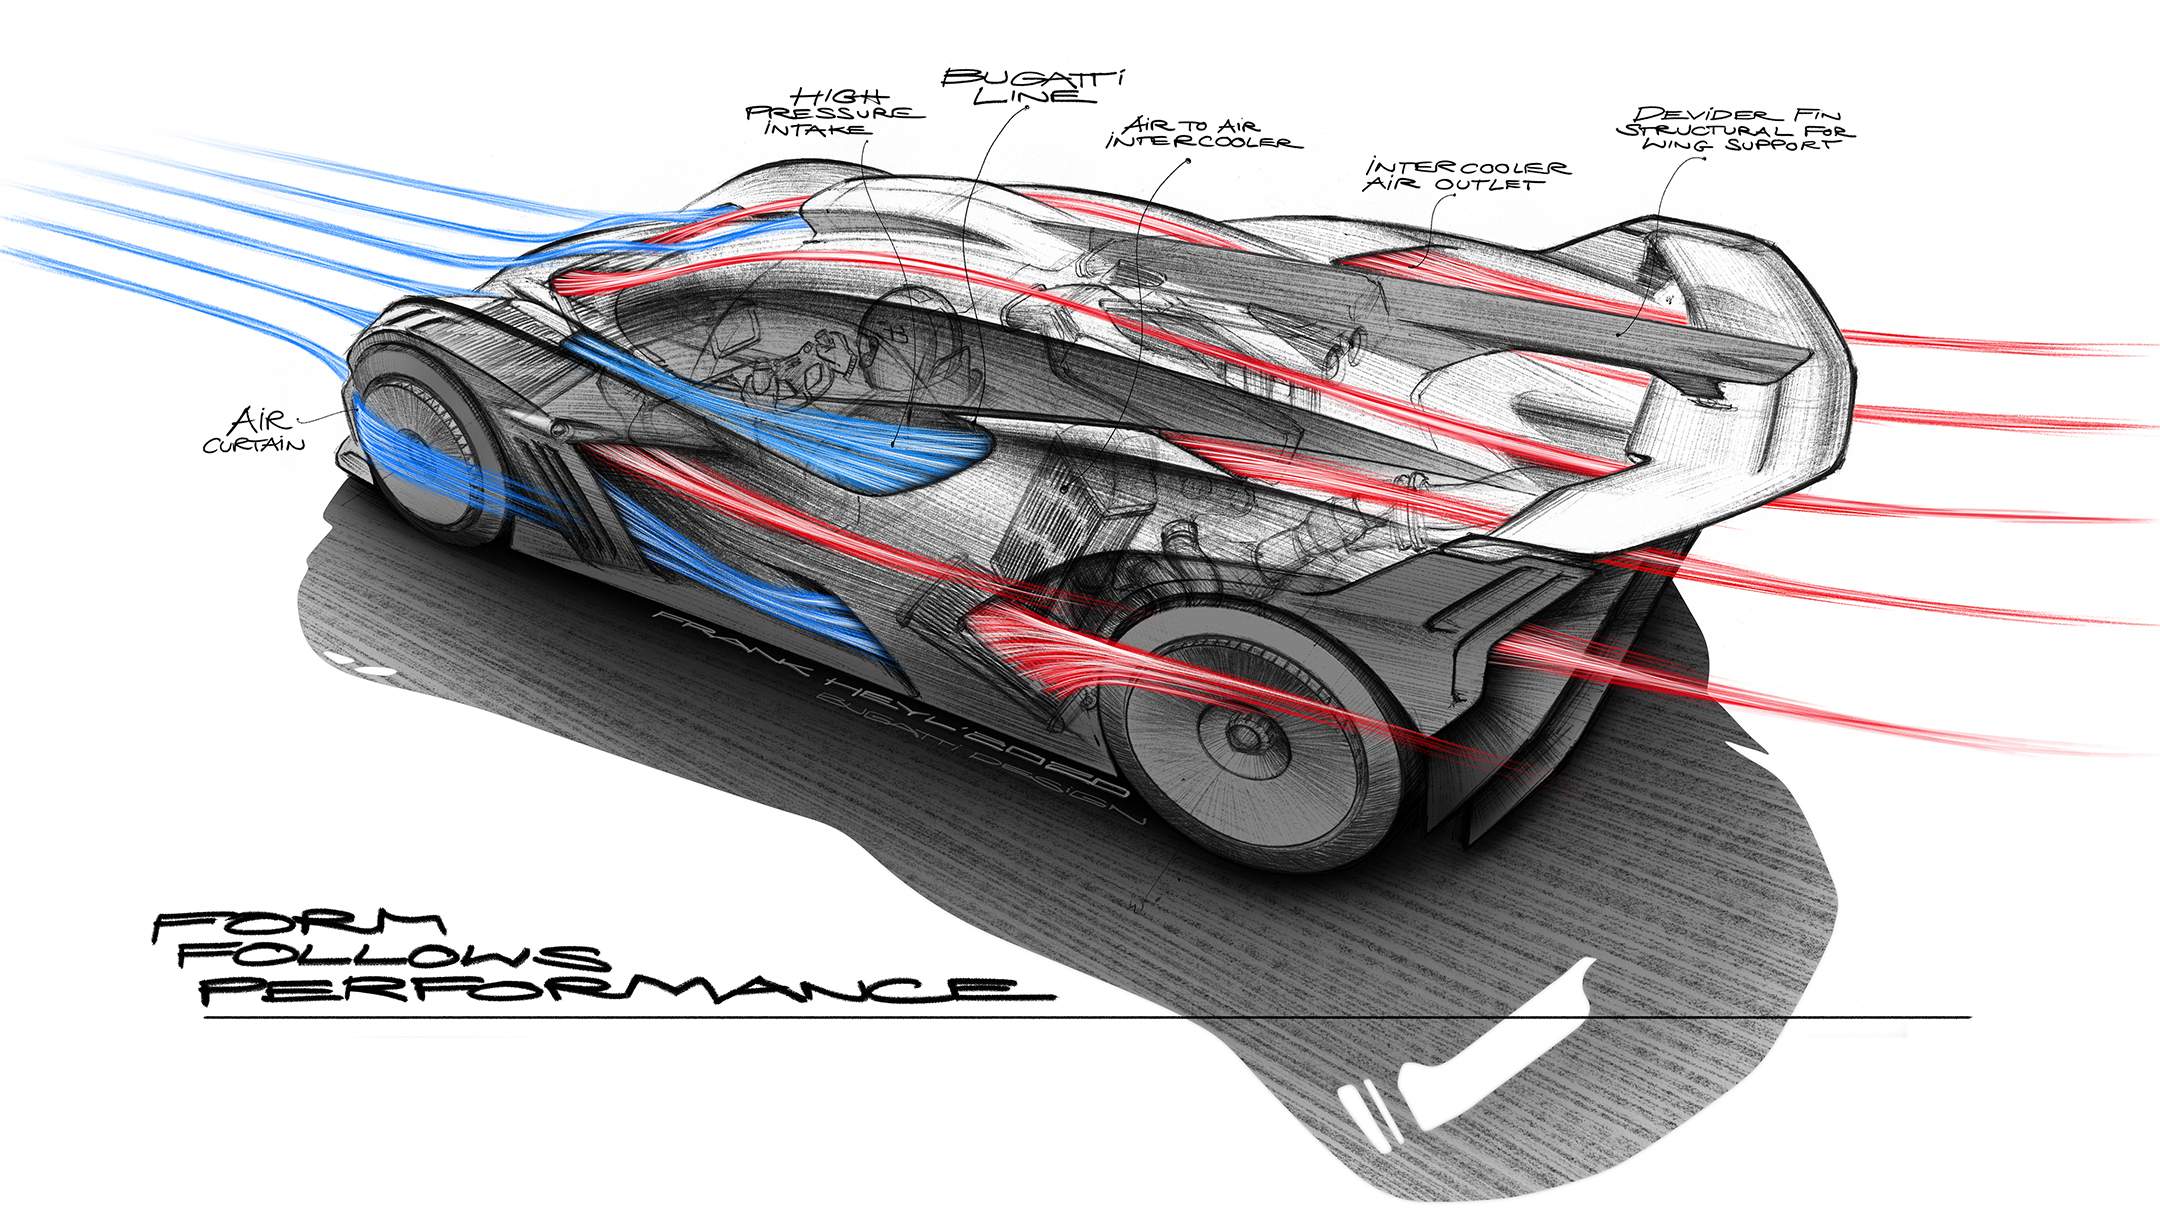 Bugatti Bolide - 2020 - sketch - rear side-face / profil arrière - form follows performance